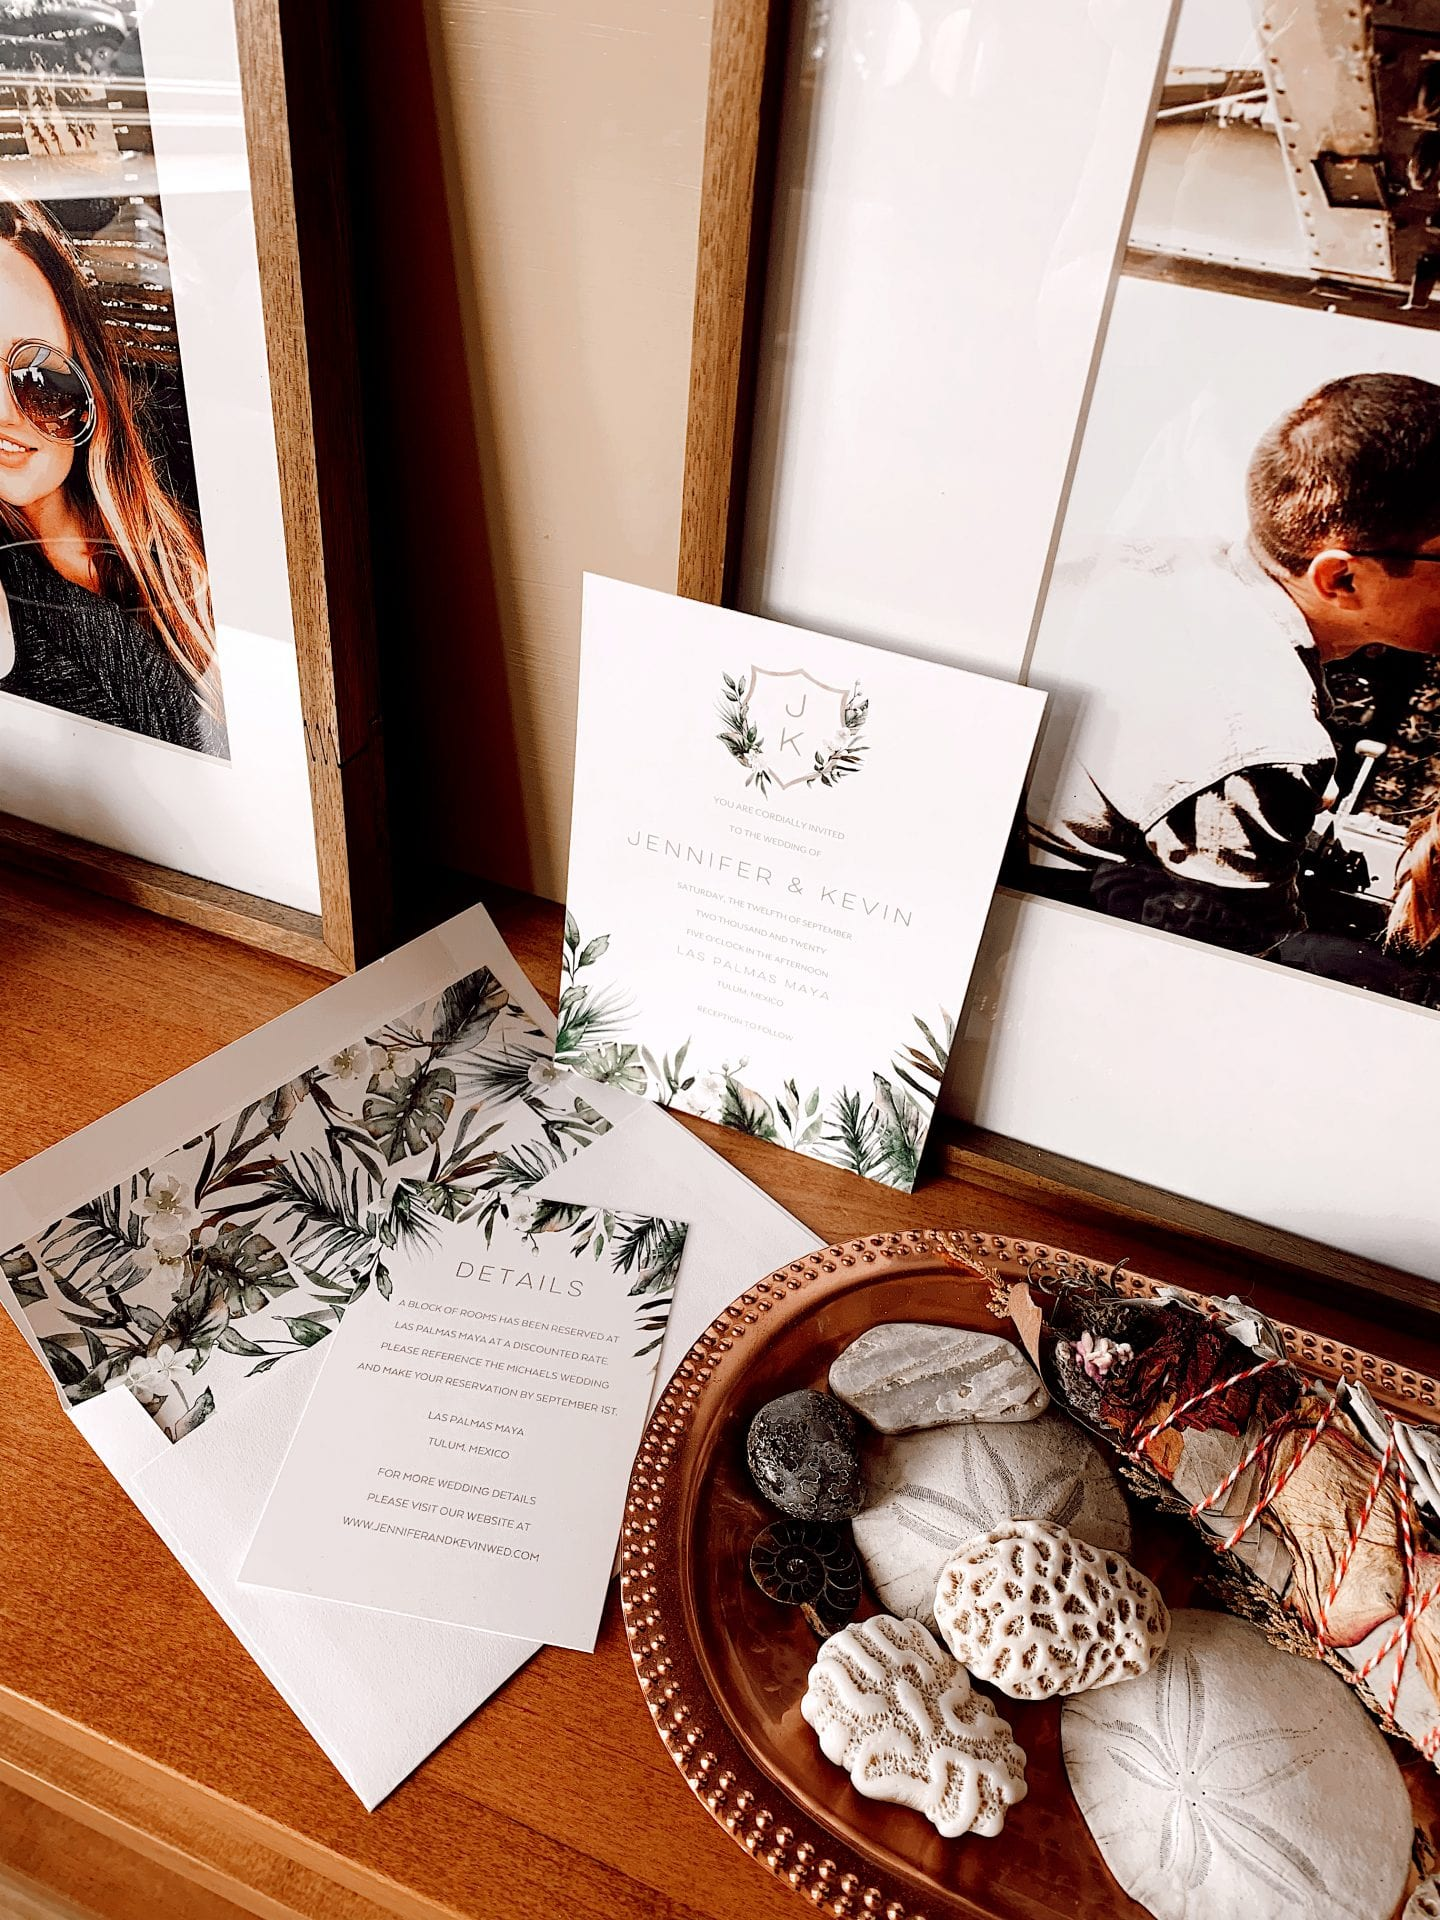 THE WEDDING SHOP BY SHUTTERFLY